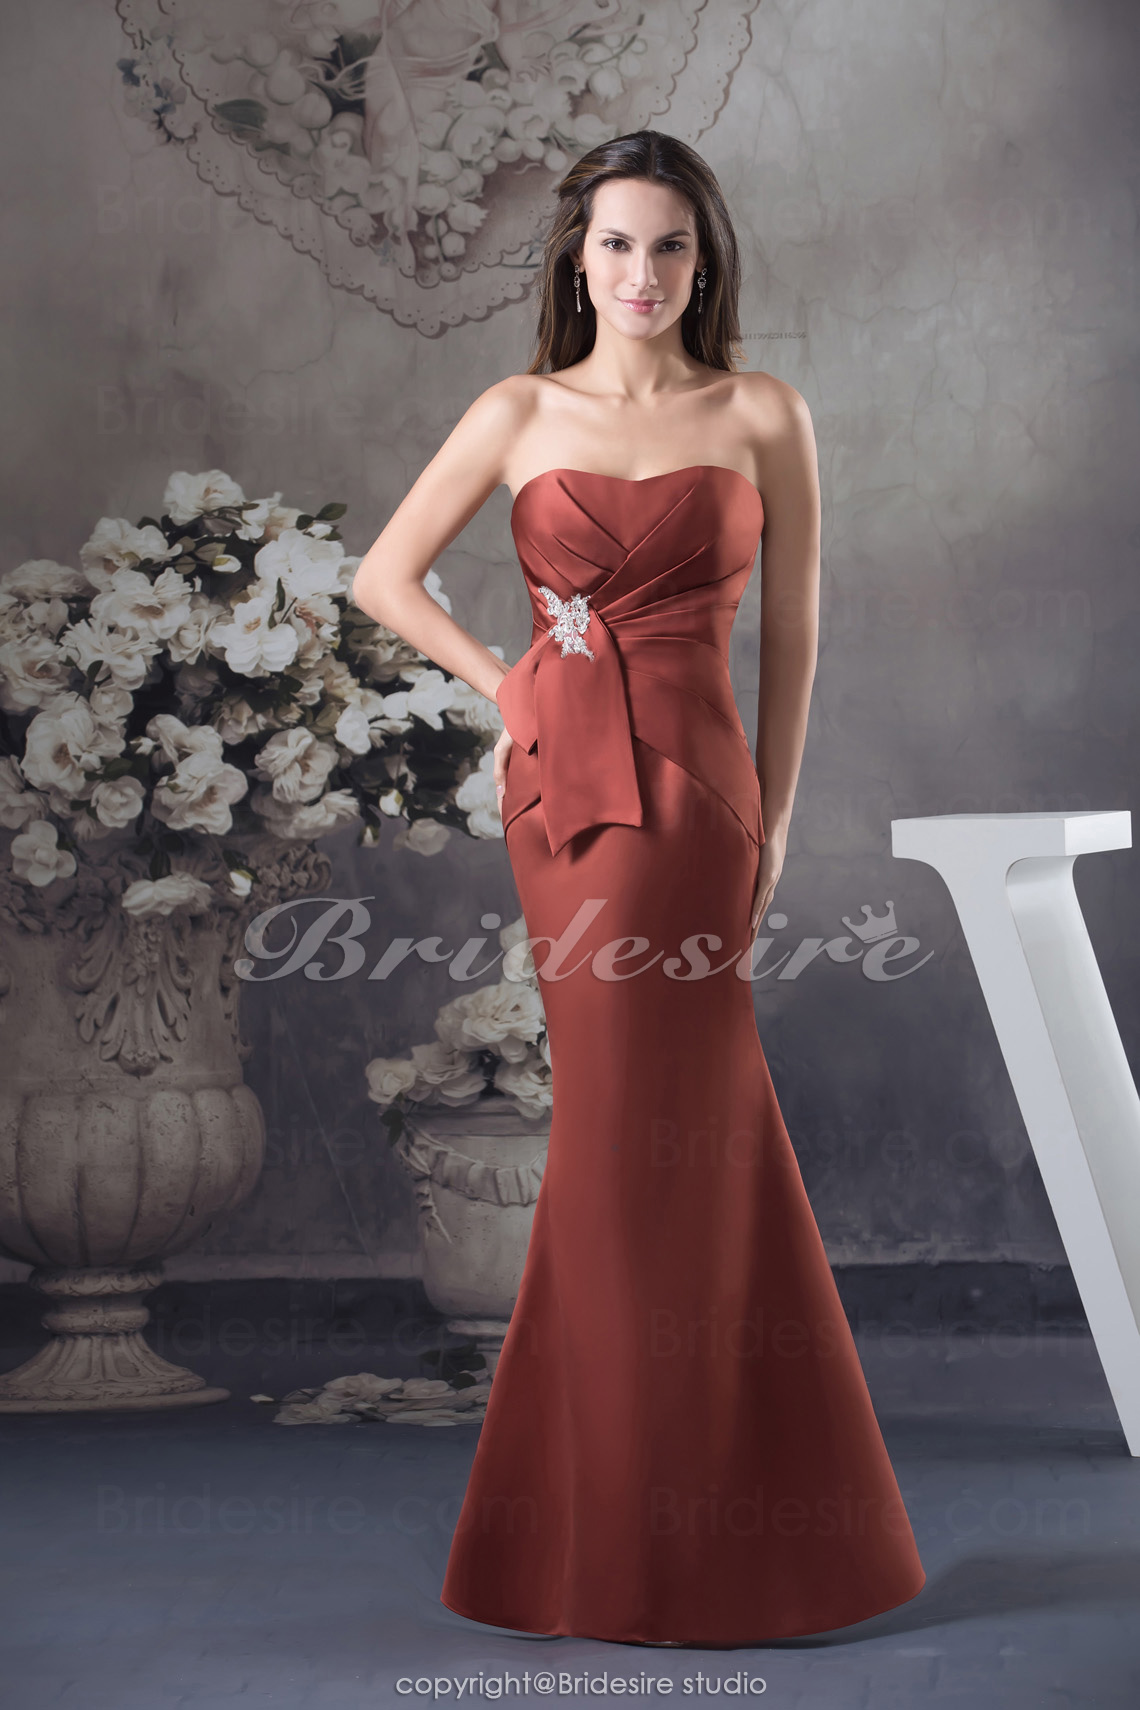 Trumpet/Mermaid Strapless Floor-length Sleeveless Satin Dress